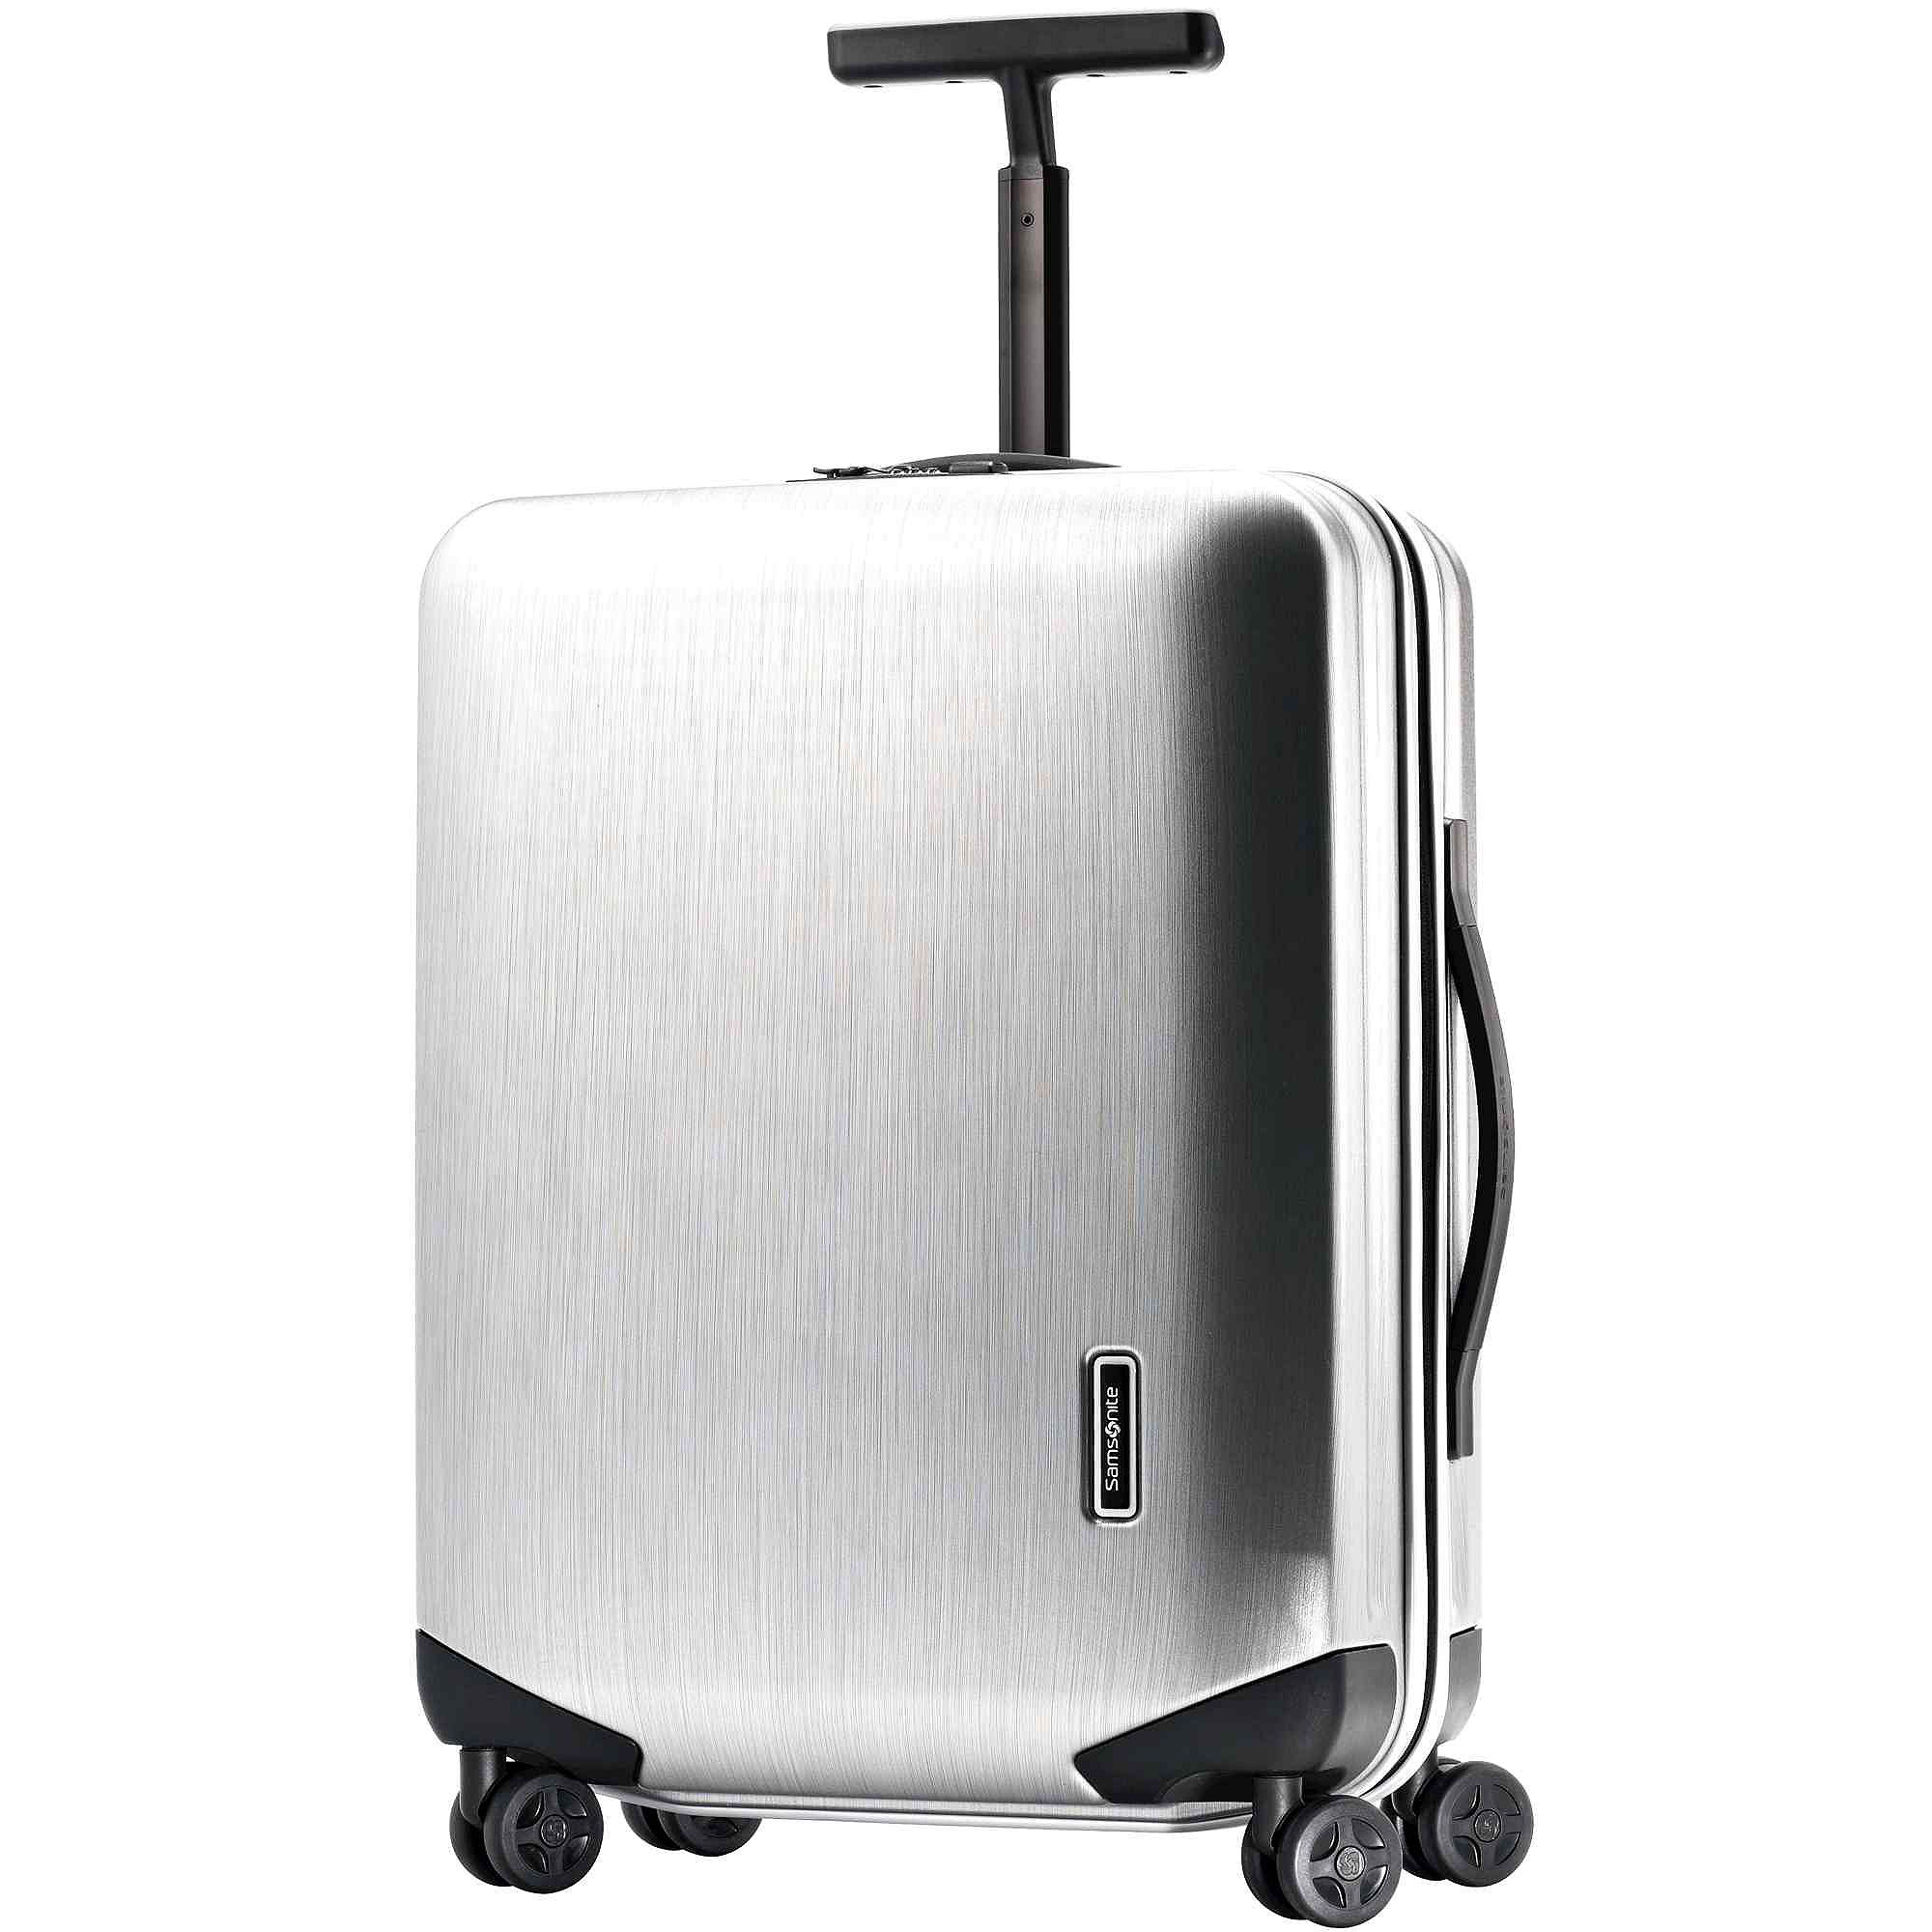 "Samsonite Inova 20"" Hardside Carry-On Upright Luggage"